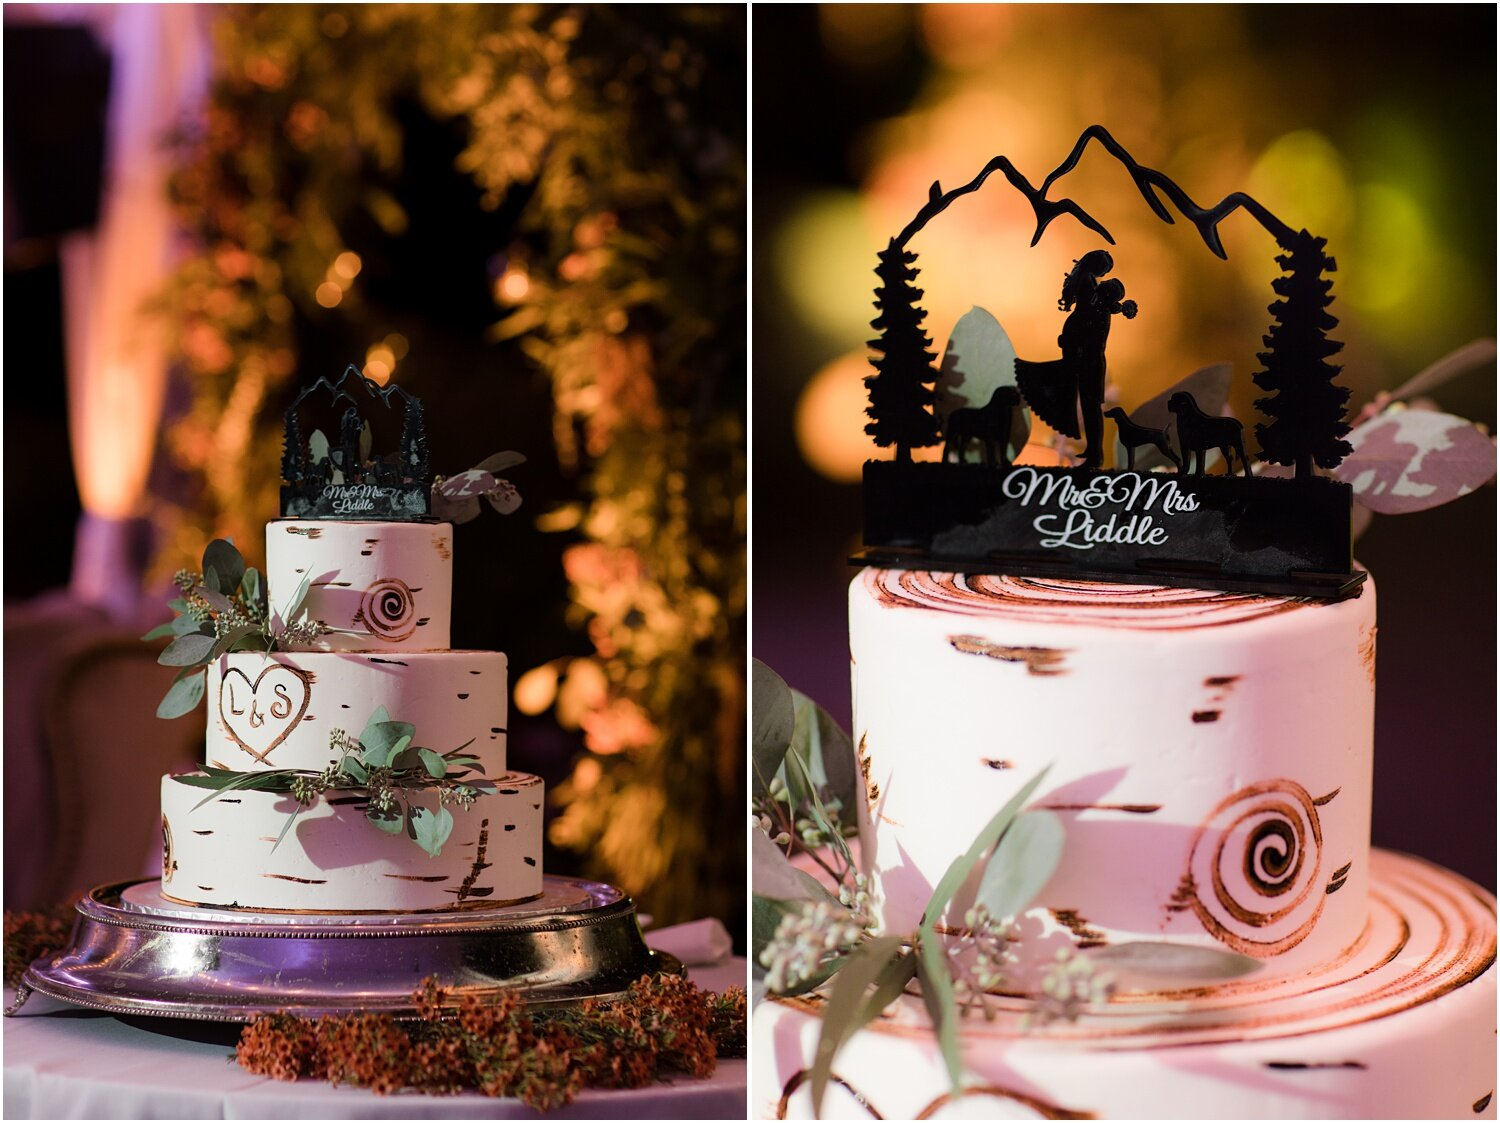 Birch wedding cake with silhouette cake topper